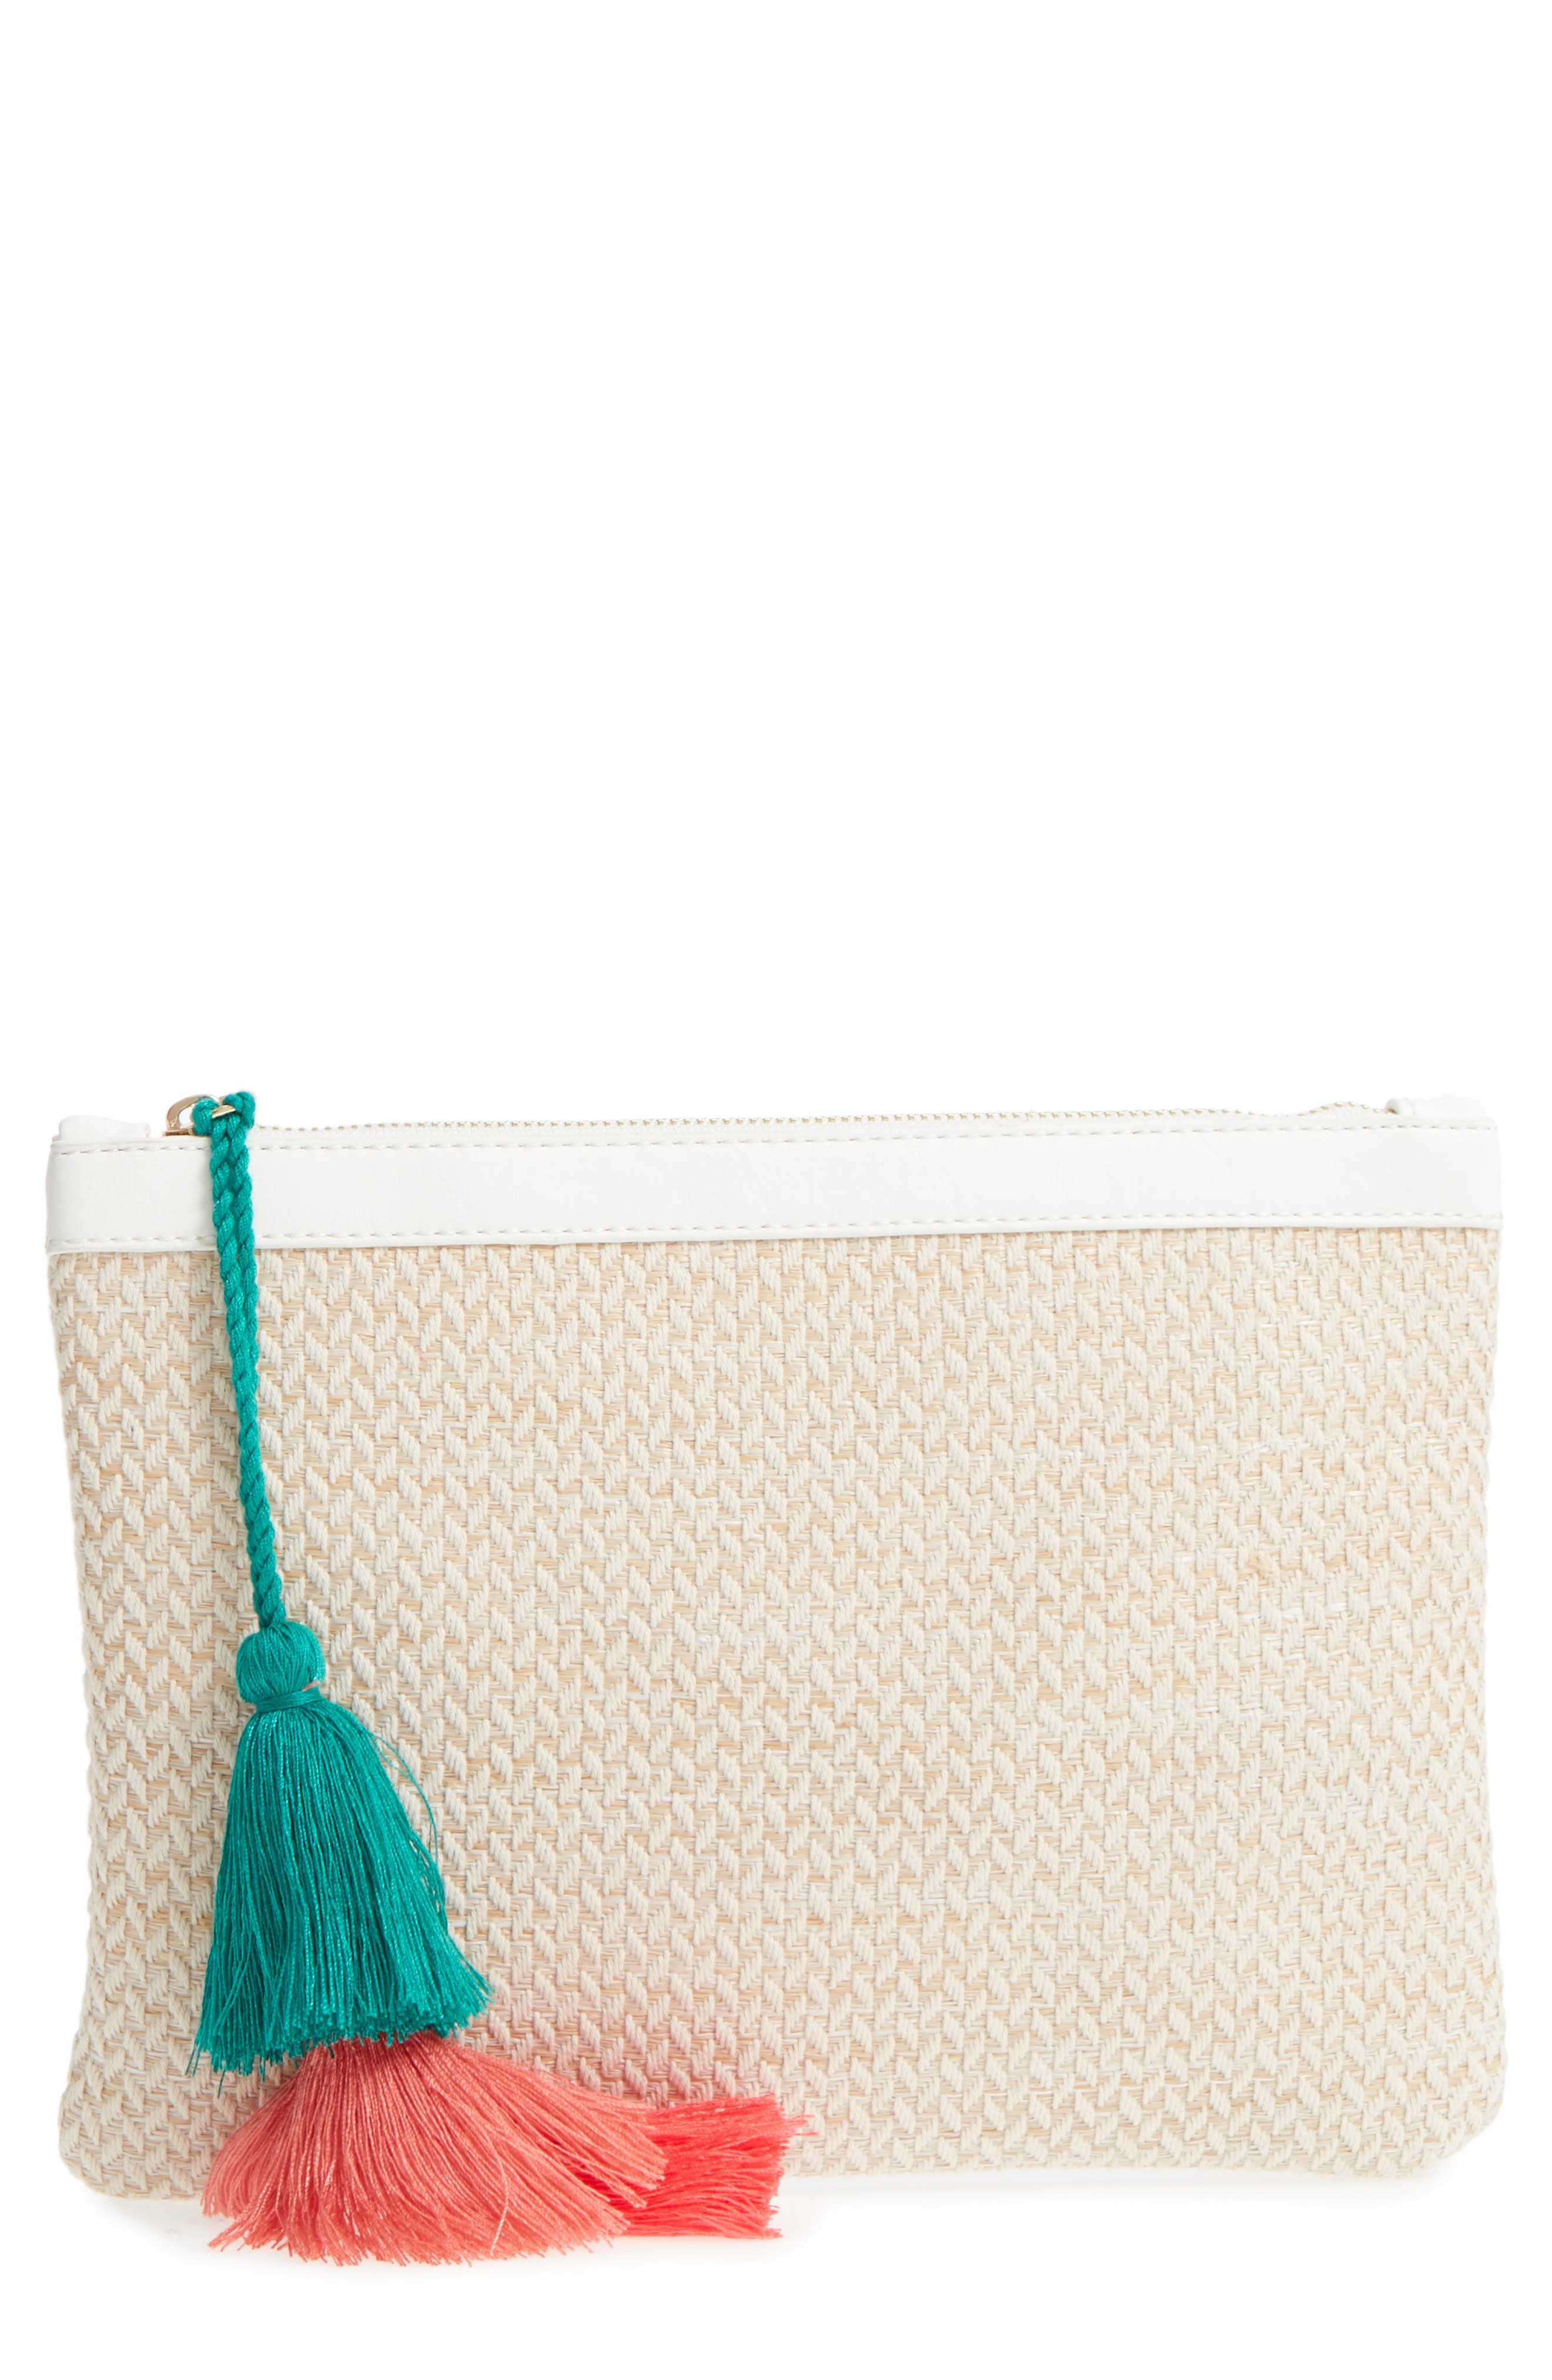 Tasseled Fabric Zip Pouch,                             Main thumbnail 1, color,                             101